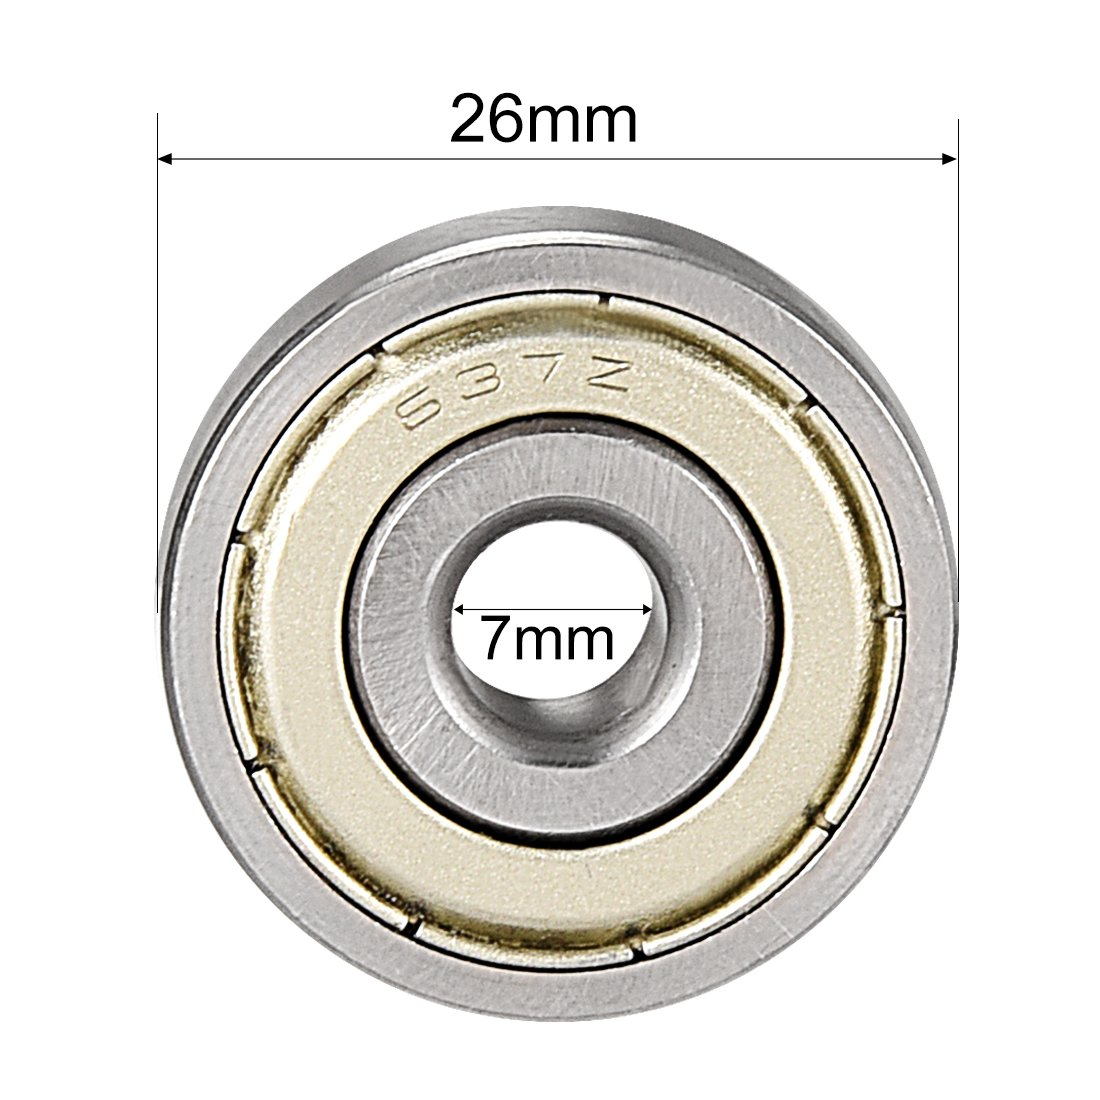 5mm x 11mm x 5mm Chrome Steel Bearings sourcing map 685ZZ Deep Groove Ball Bearing Double Shield 685-2Z Pack of 1